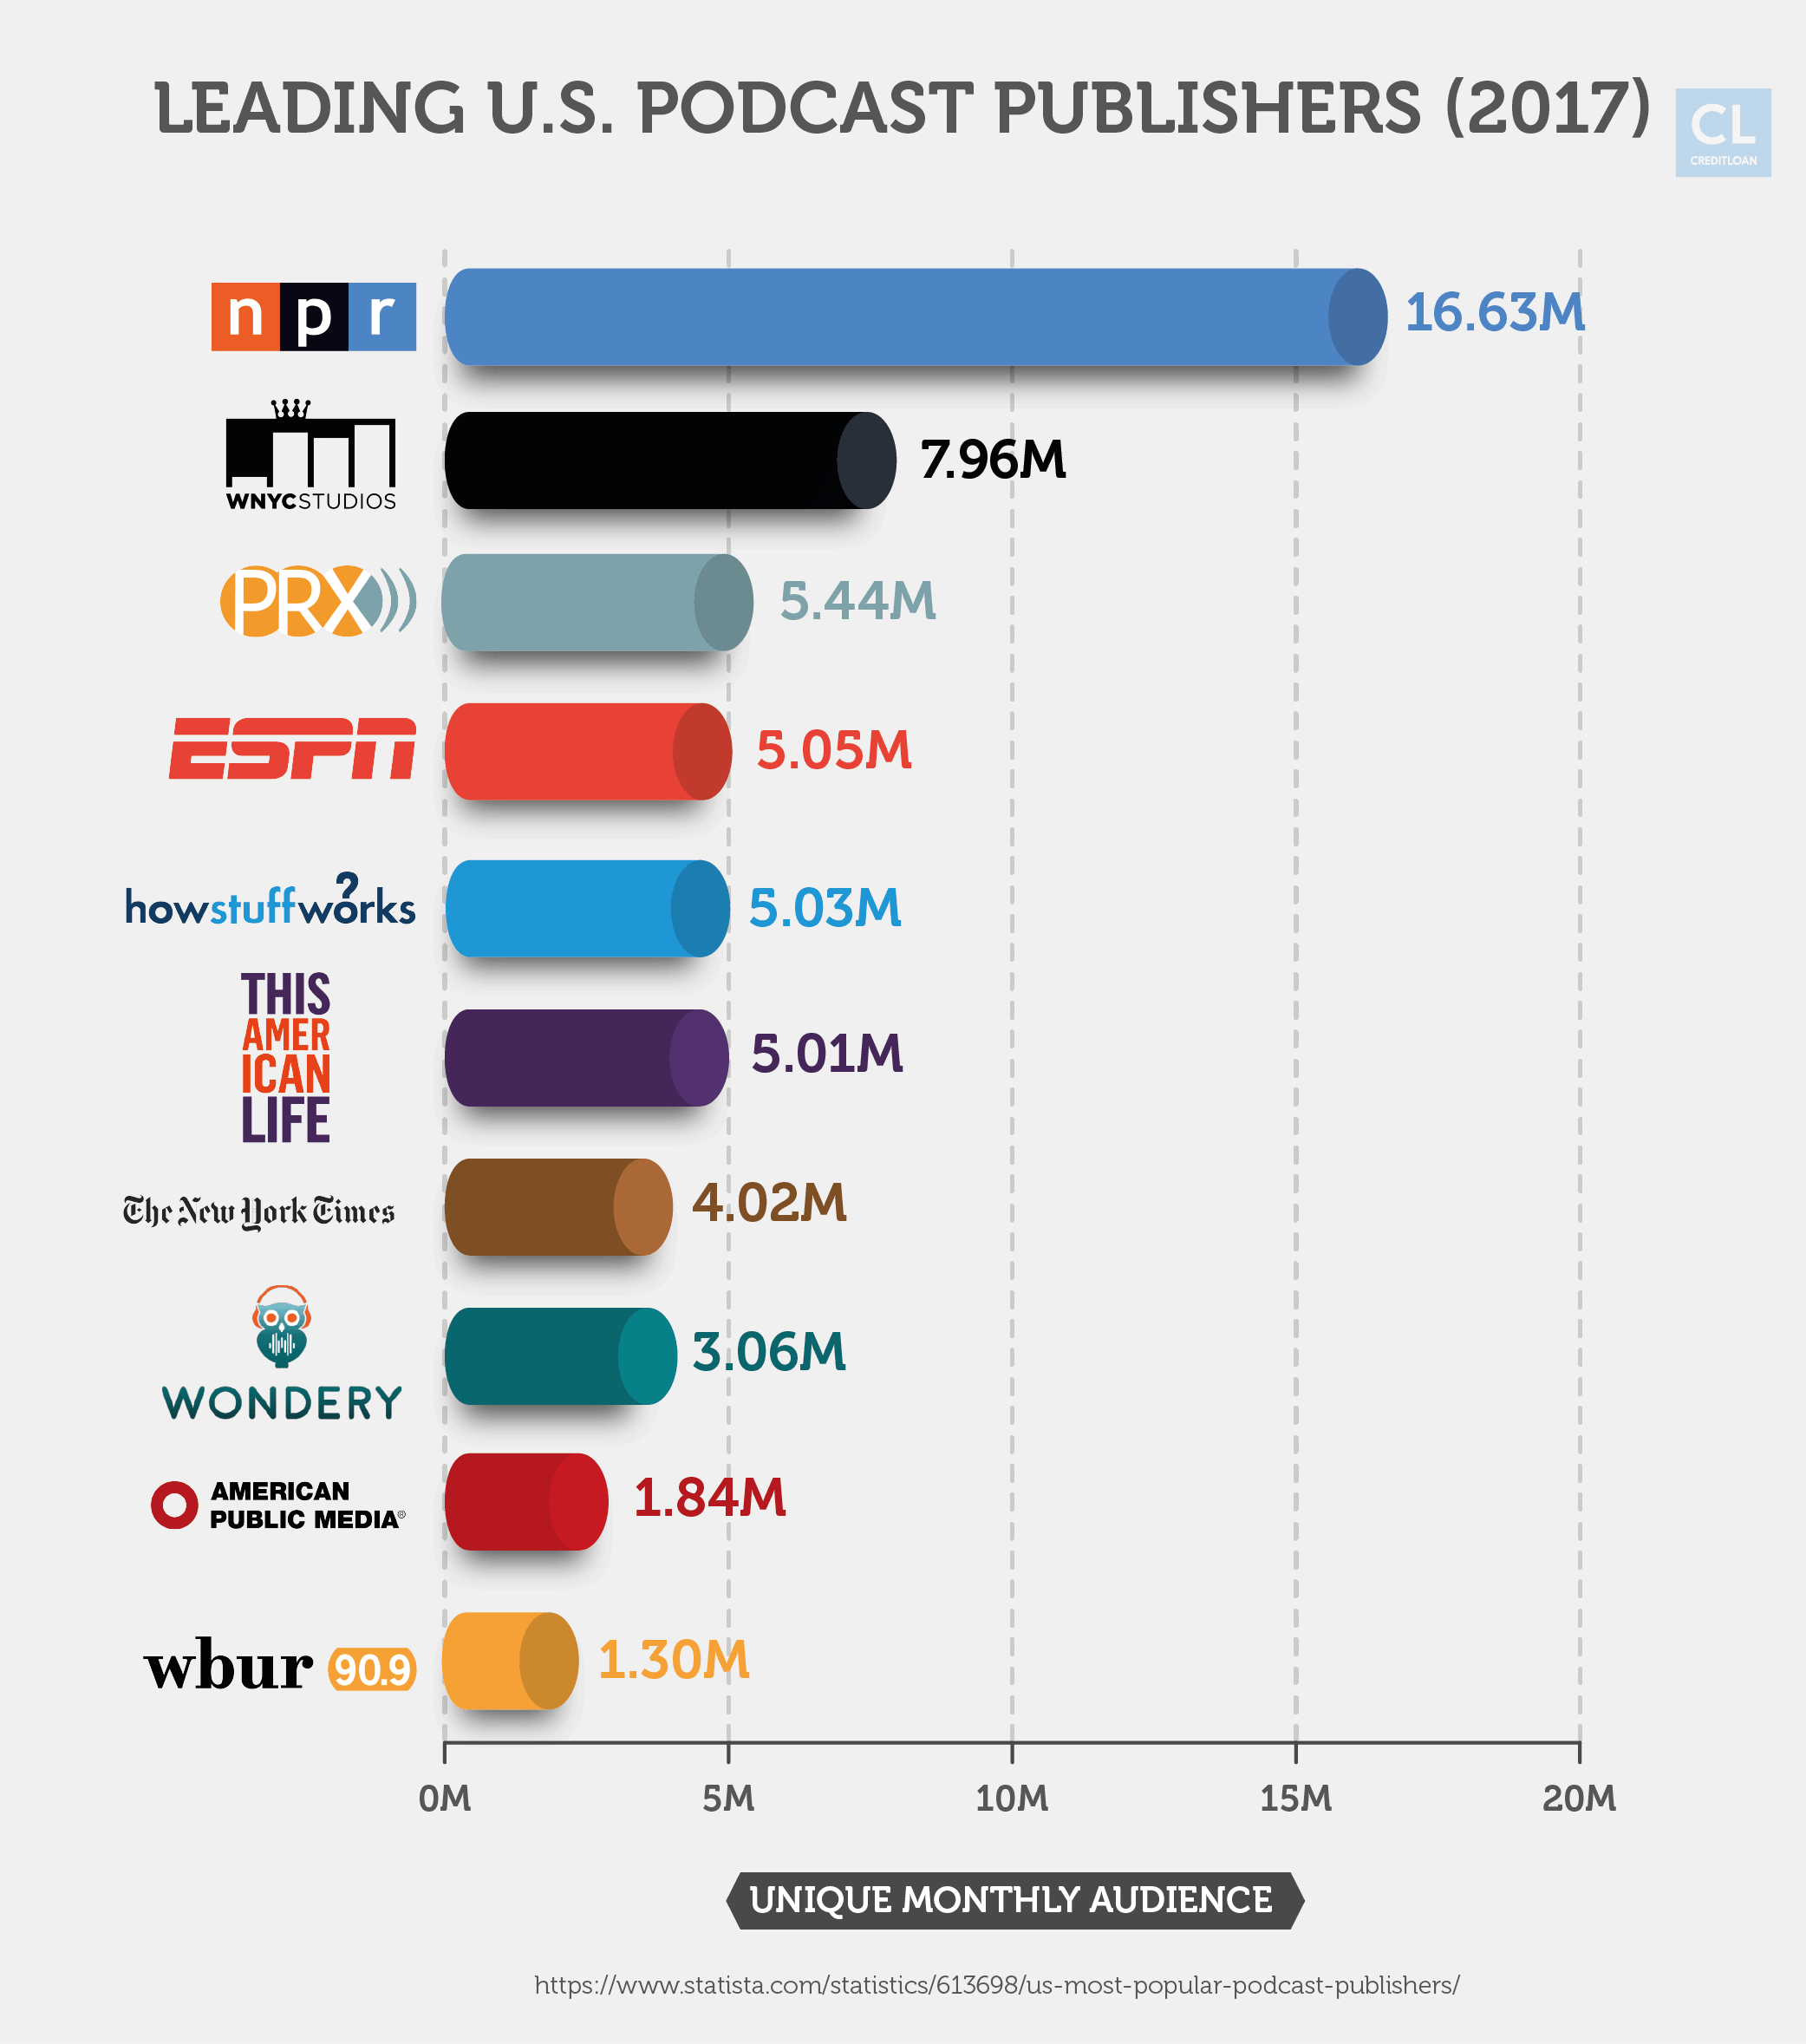 Leading U.S. podcast publishers in 2017